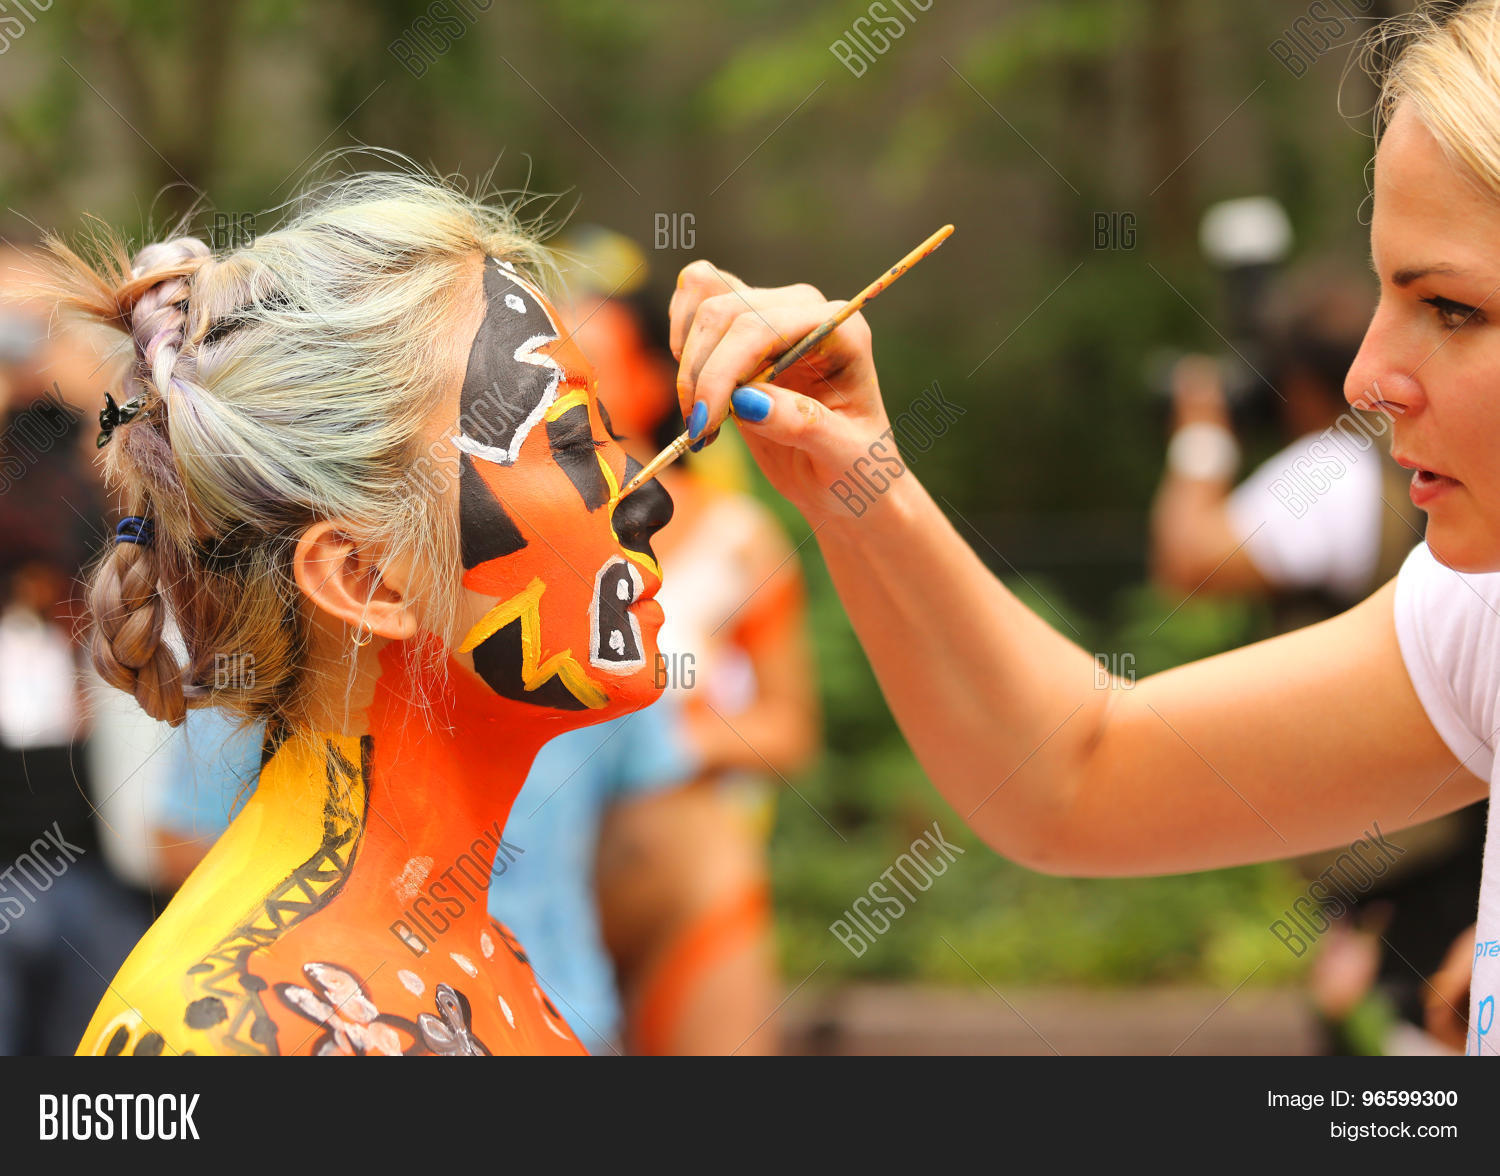 NEW YORK - JULY 18, 2015:Model during second NYC Body Painting Day in  midtown Manhattan featuring artist Andy Golub in New York.Artists paint 100  fully nude ...